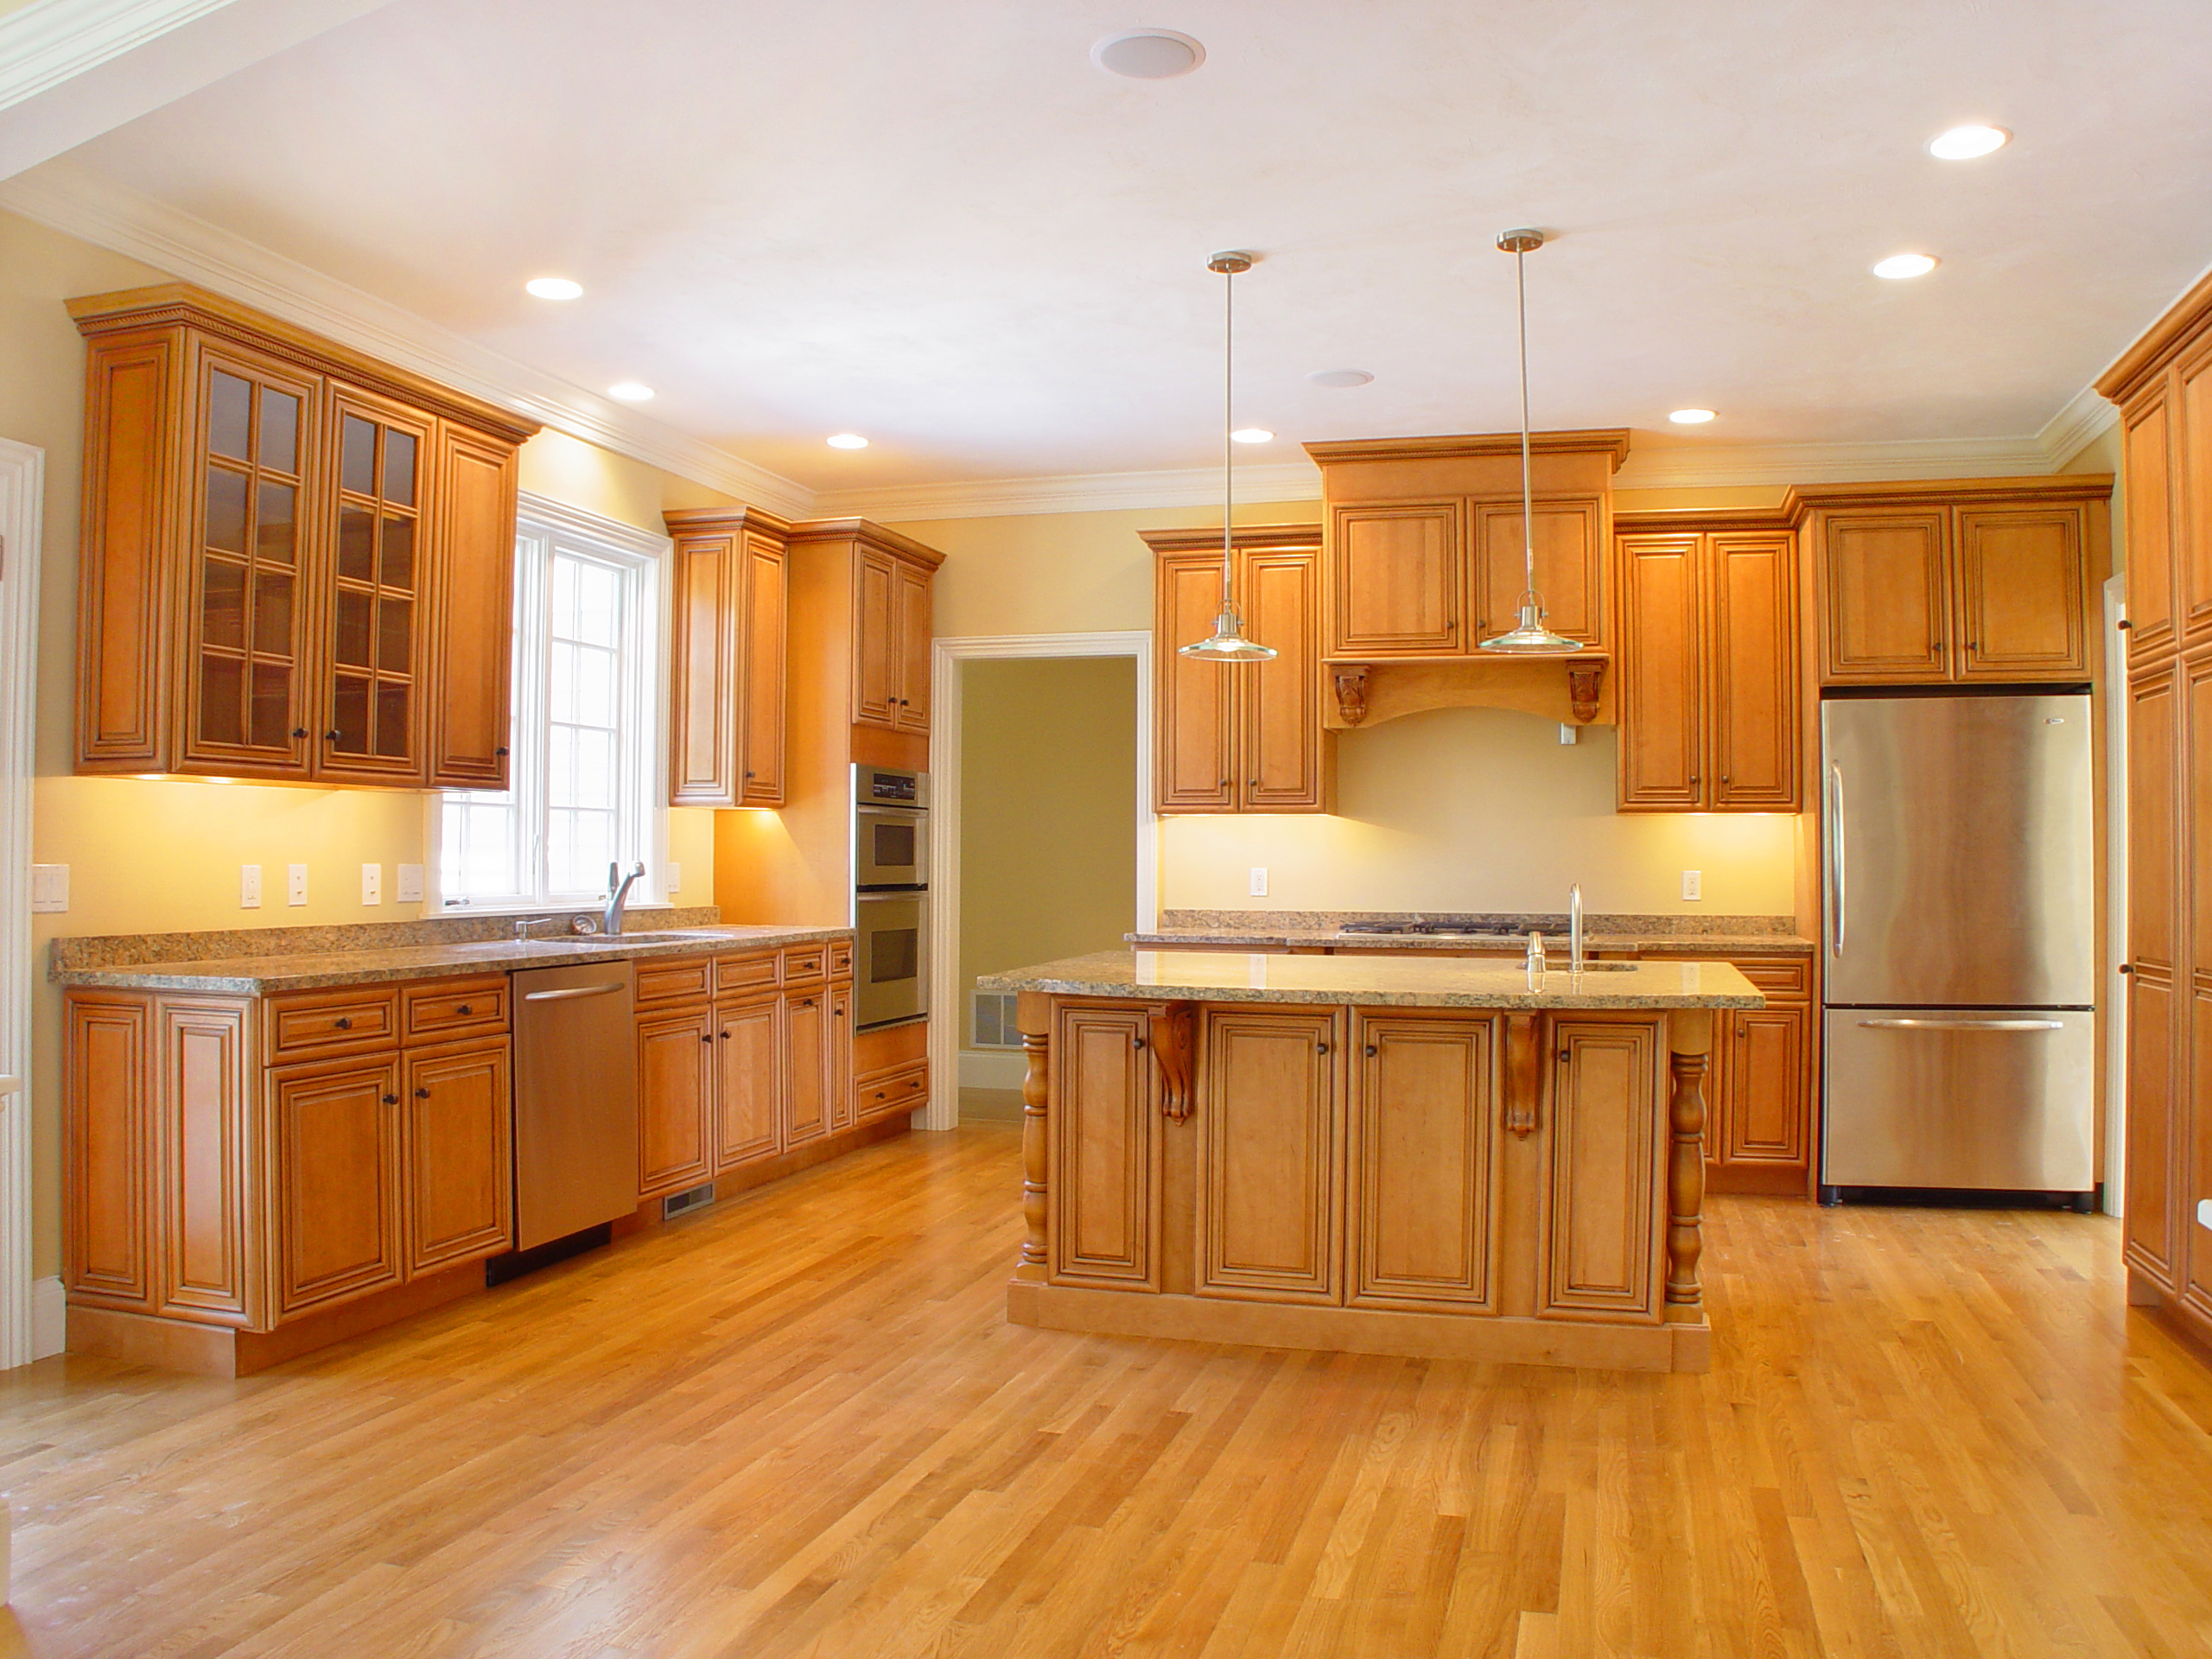 S. G. Custom Homes & Remodeling